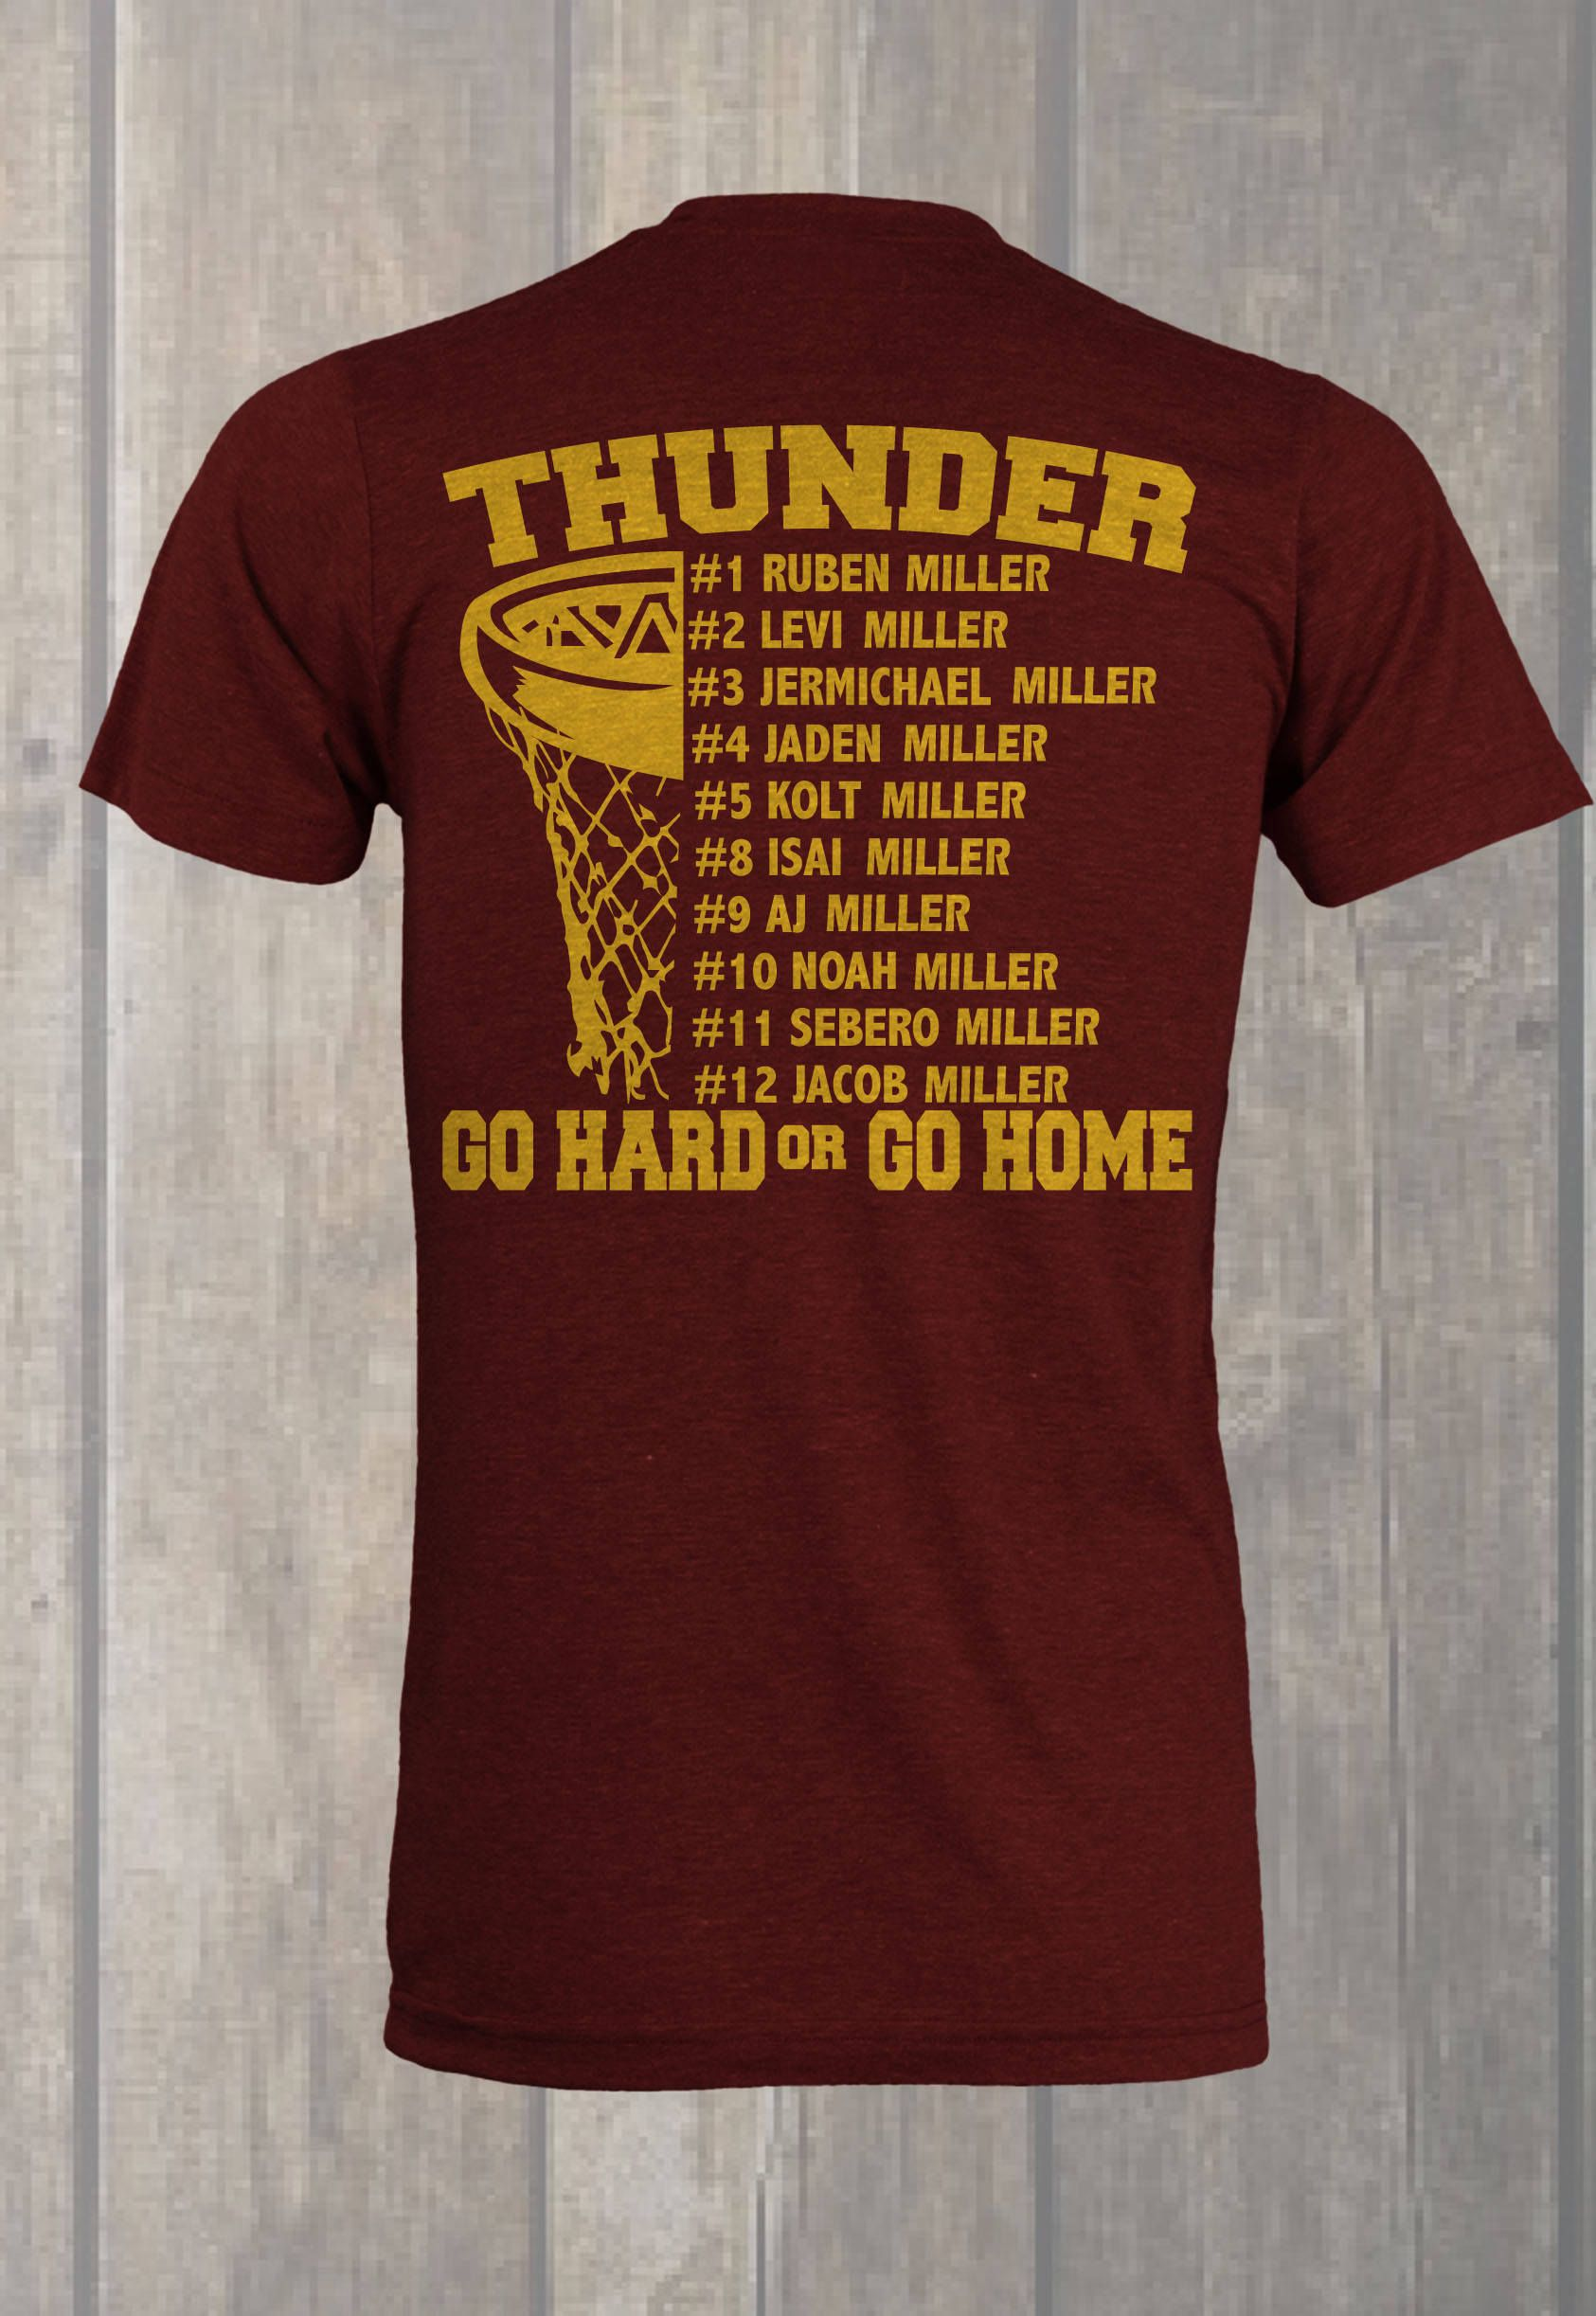 Custom Basketball Roster By Tdzdesignz On Etsy Basketball T Shirt Designs Basketball Tshirt Designs Team Shirt Designs